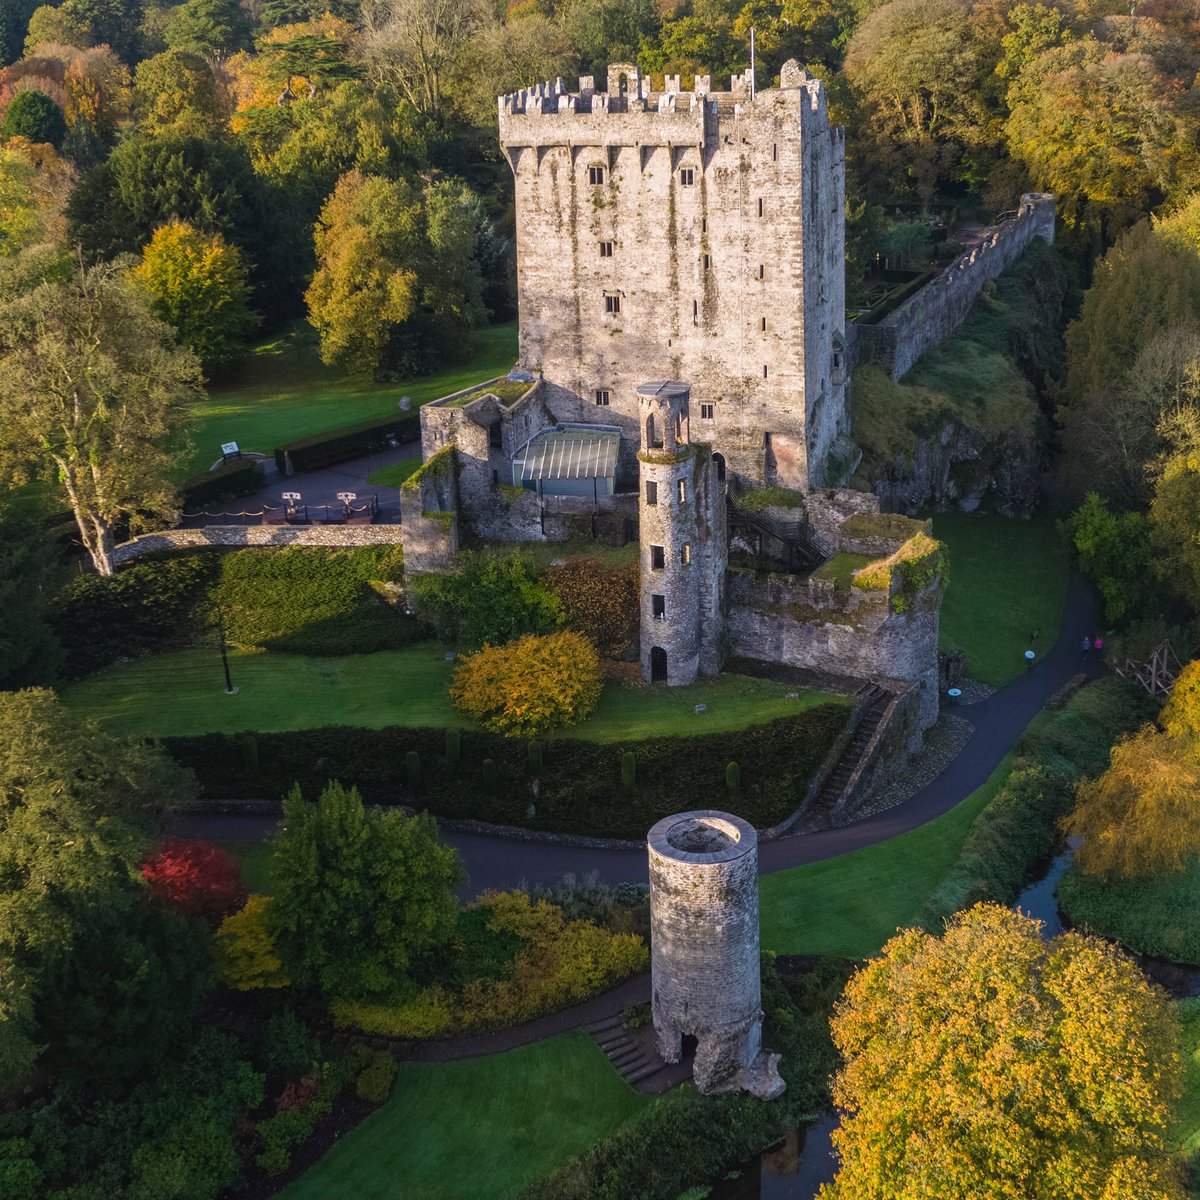 A bird's eye view of the autumn colour surrounding Blarney Castle! Magical!   #bankholiday #staylocal #blarneycastleandgardens #purecorkwelcomes #cork #ireland #walks #like #follow #pictureoftheday #picoftheday #photography #autumn #autumnvibes #autumnleaves https://t.co/R3qkbyWzRR